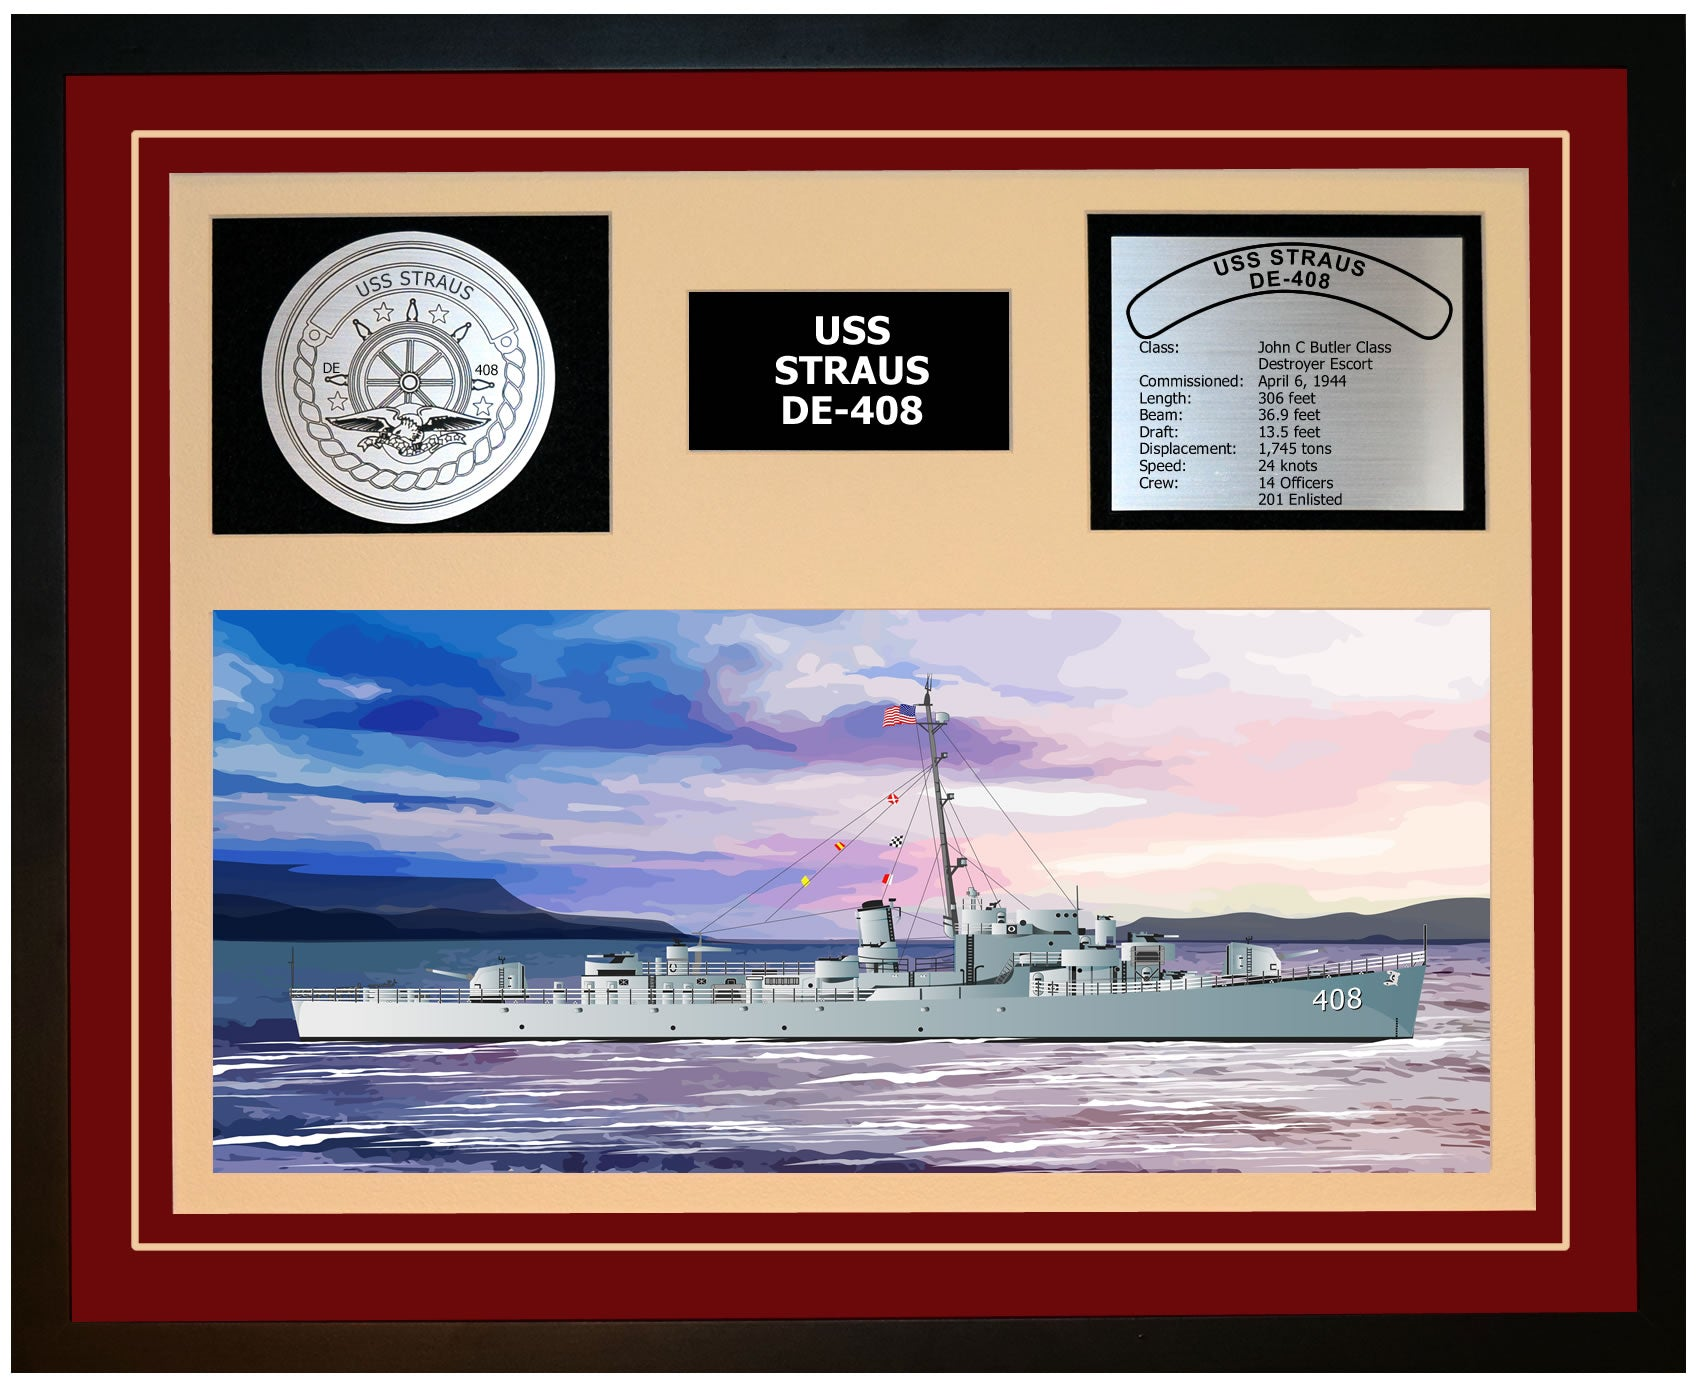 USS STRAUS DE-408 Framed Navy Ship Display Burgundy